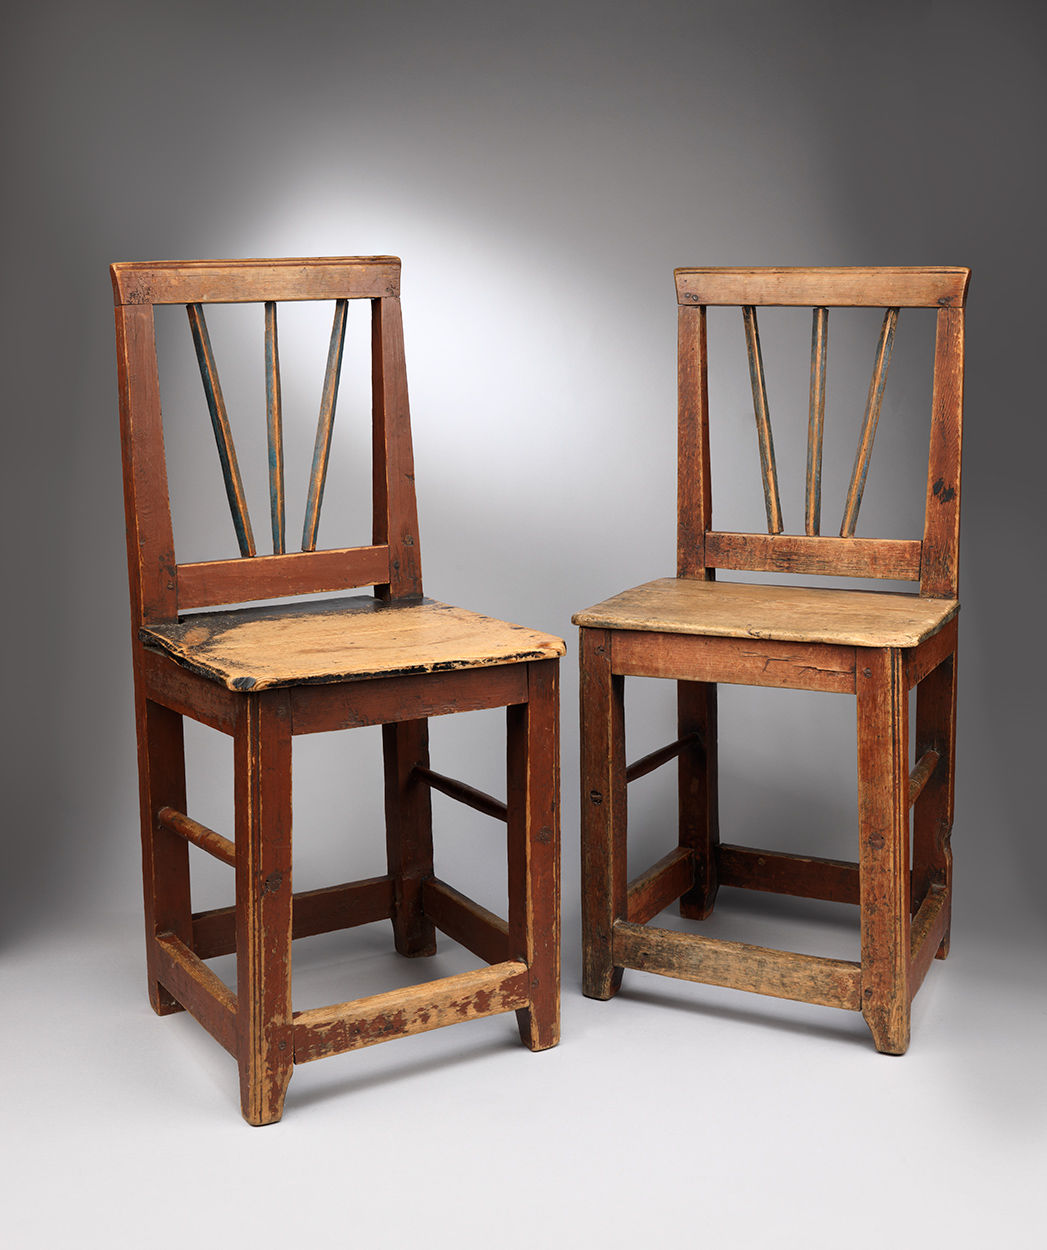 Pair of Folk Art Painted Vernacular Chairs